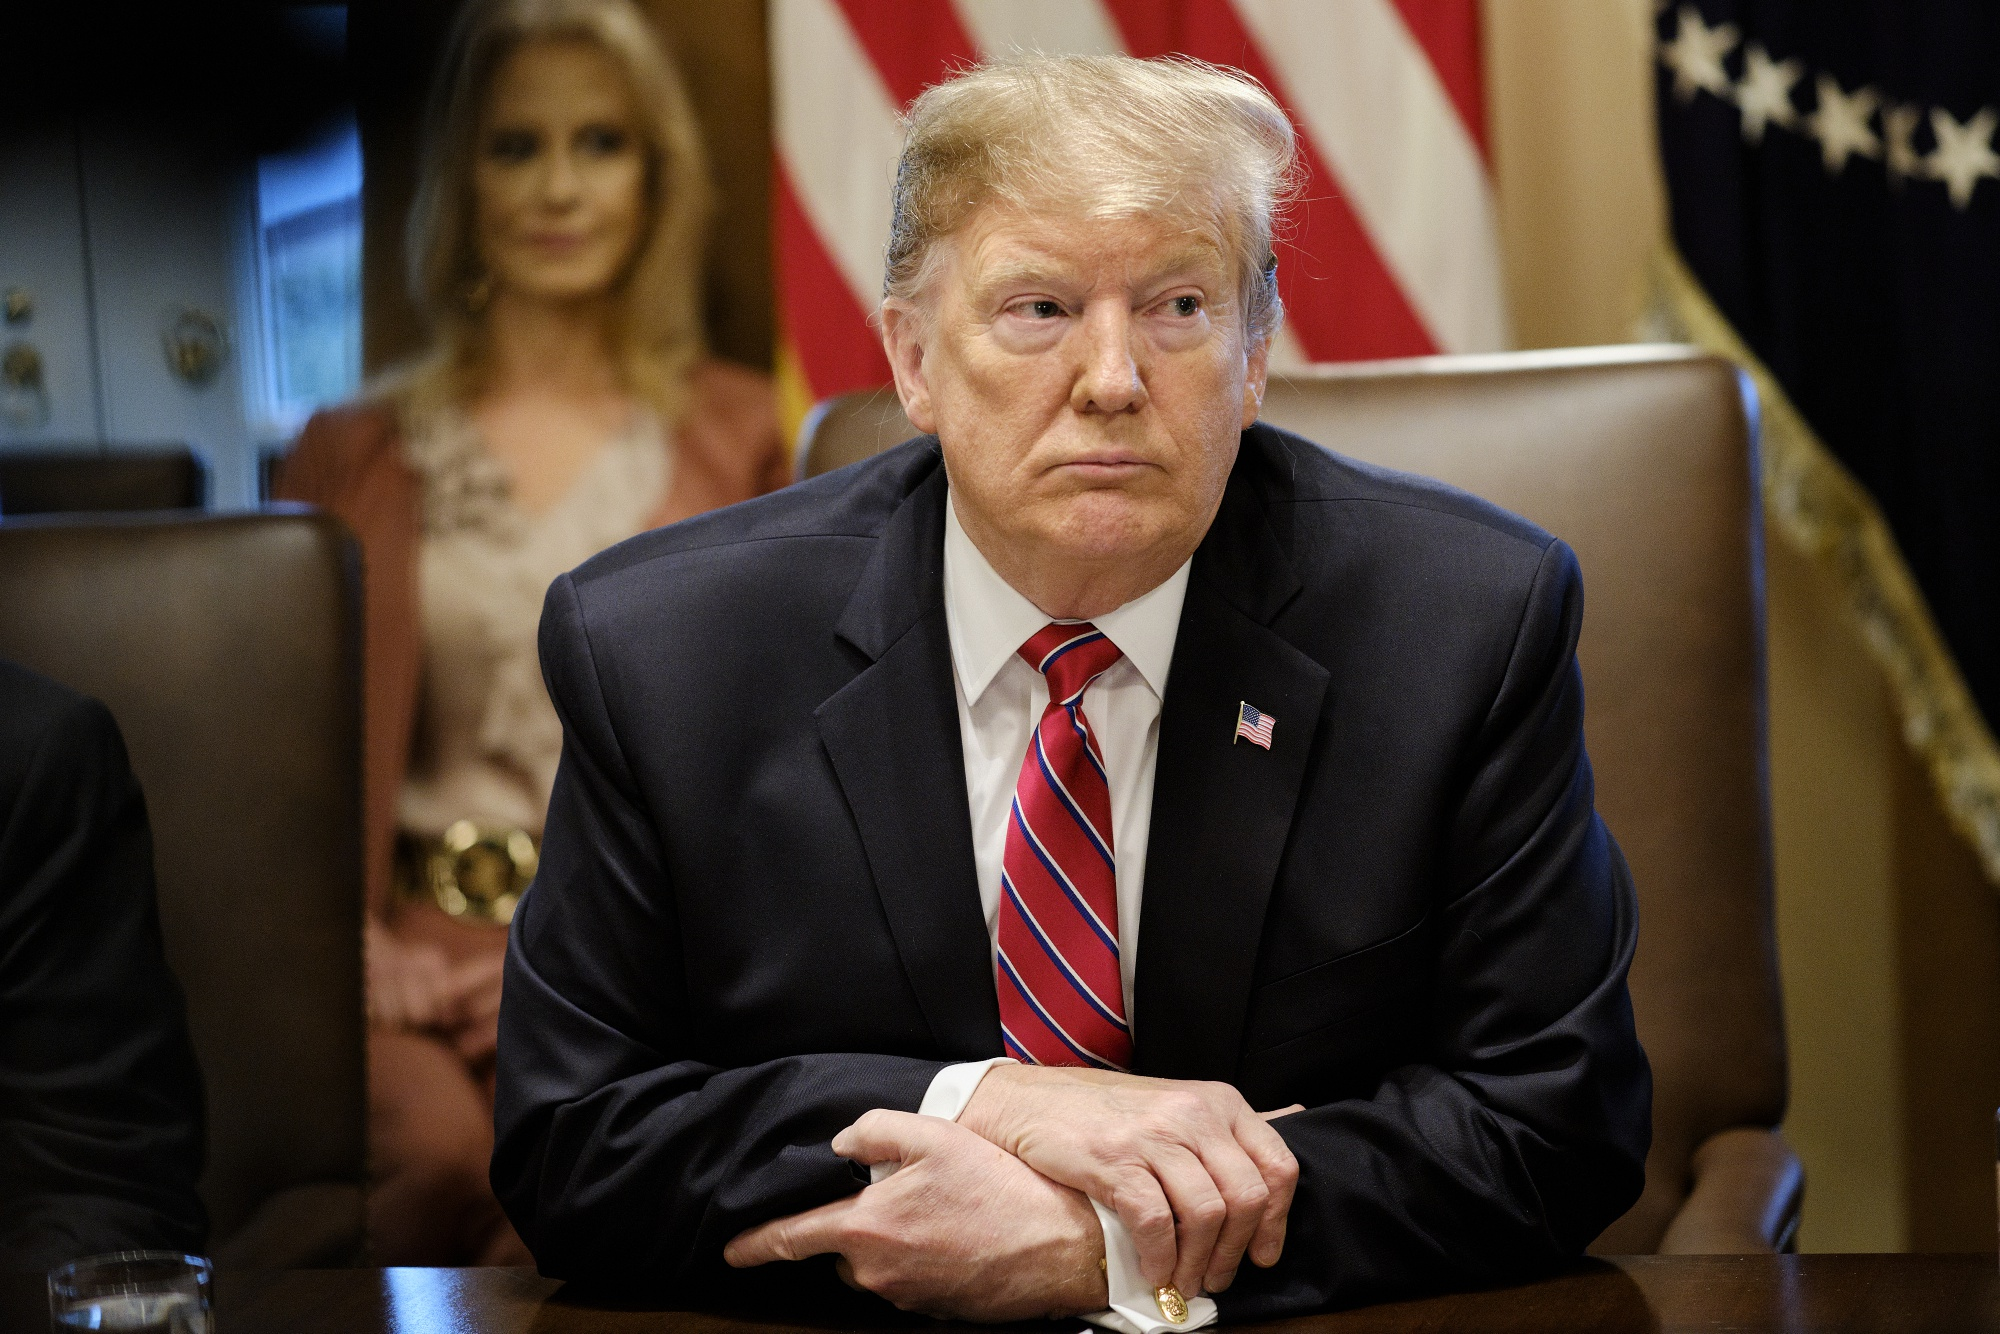 U.S. President Donald Trump listens during a meeting in the Cabinet Room of the White House in Washington, D.C., U.S., on Tuesday, Feb. 12, 2019.